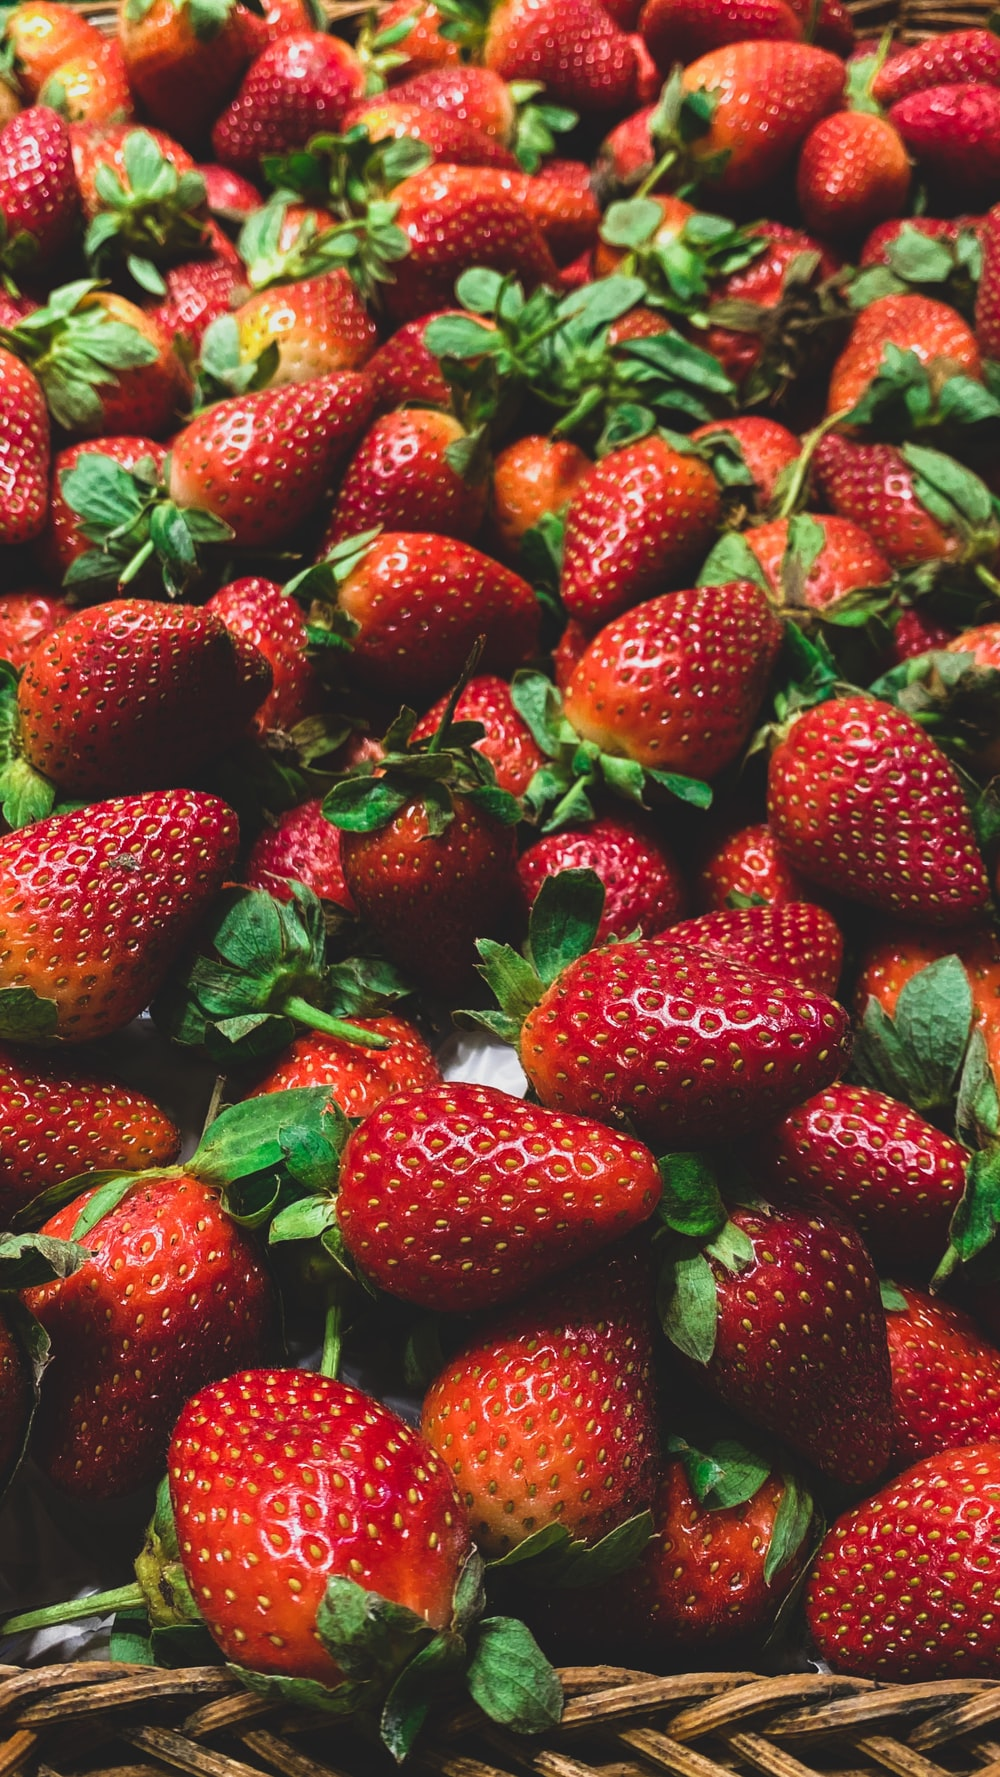 bunch of stawberries